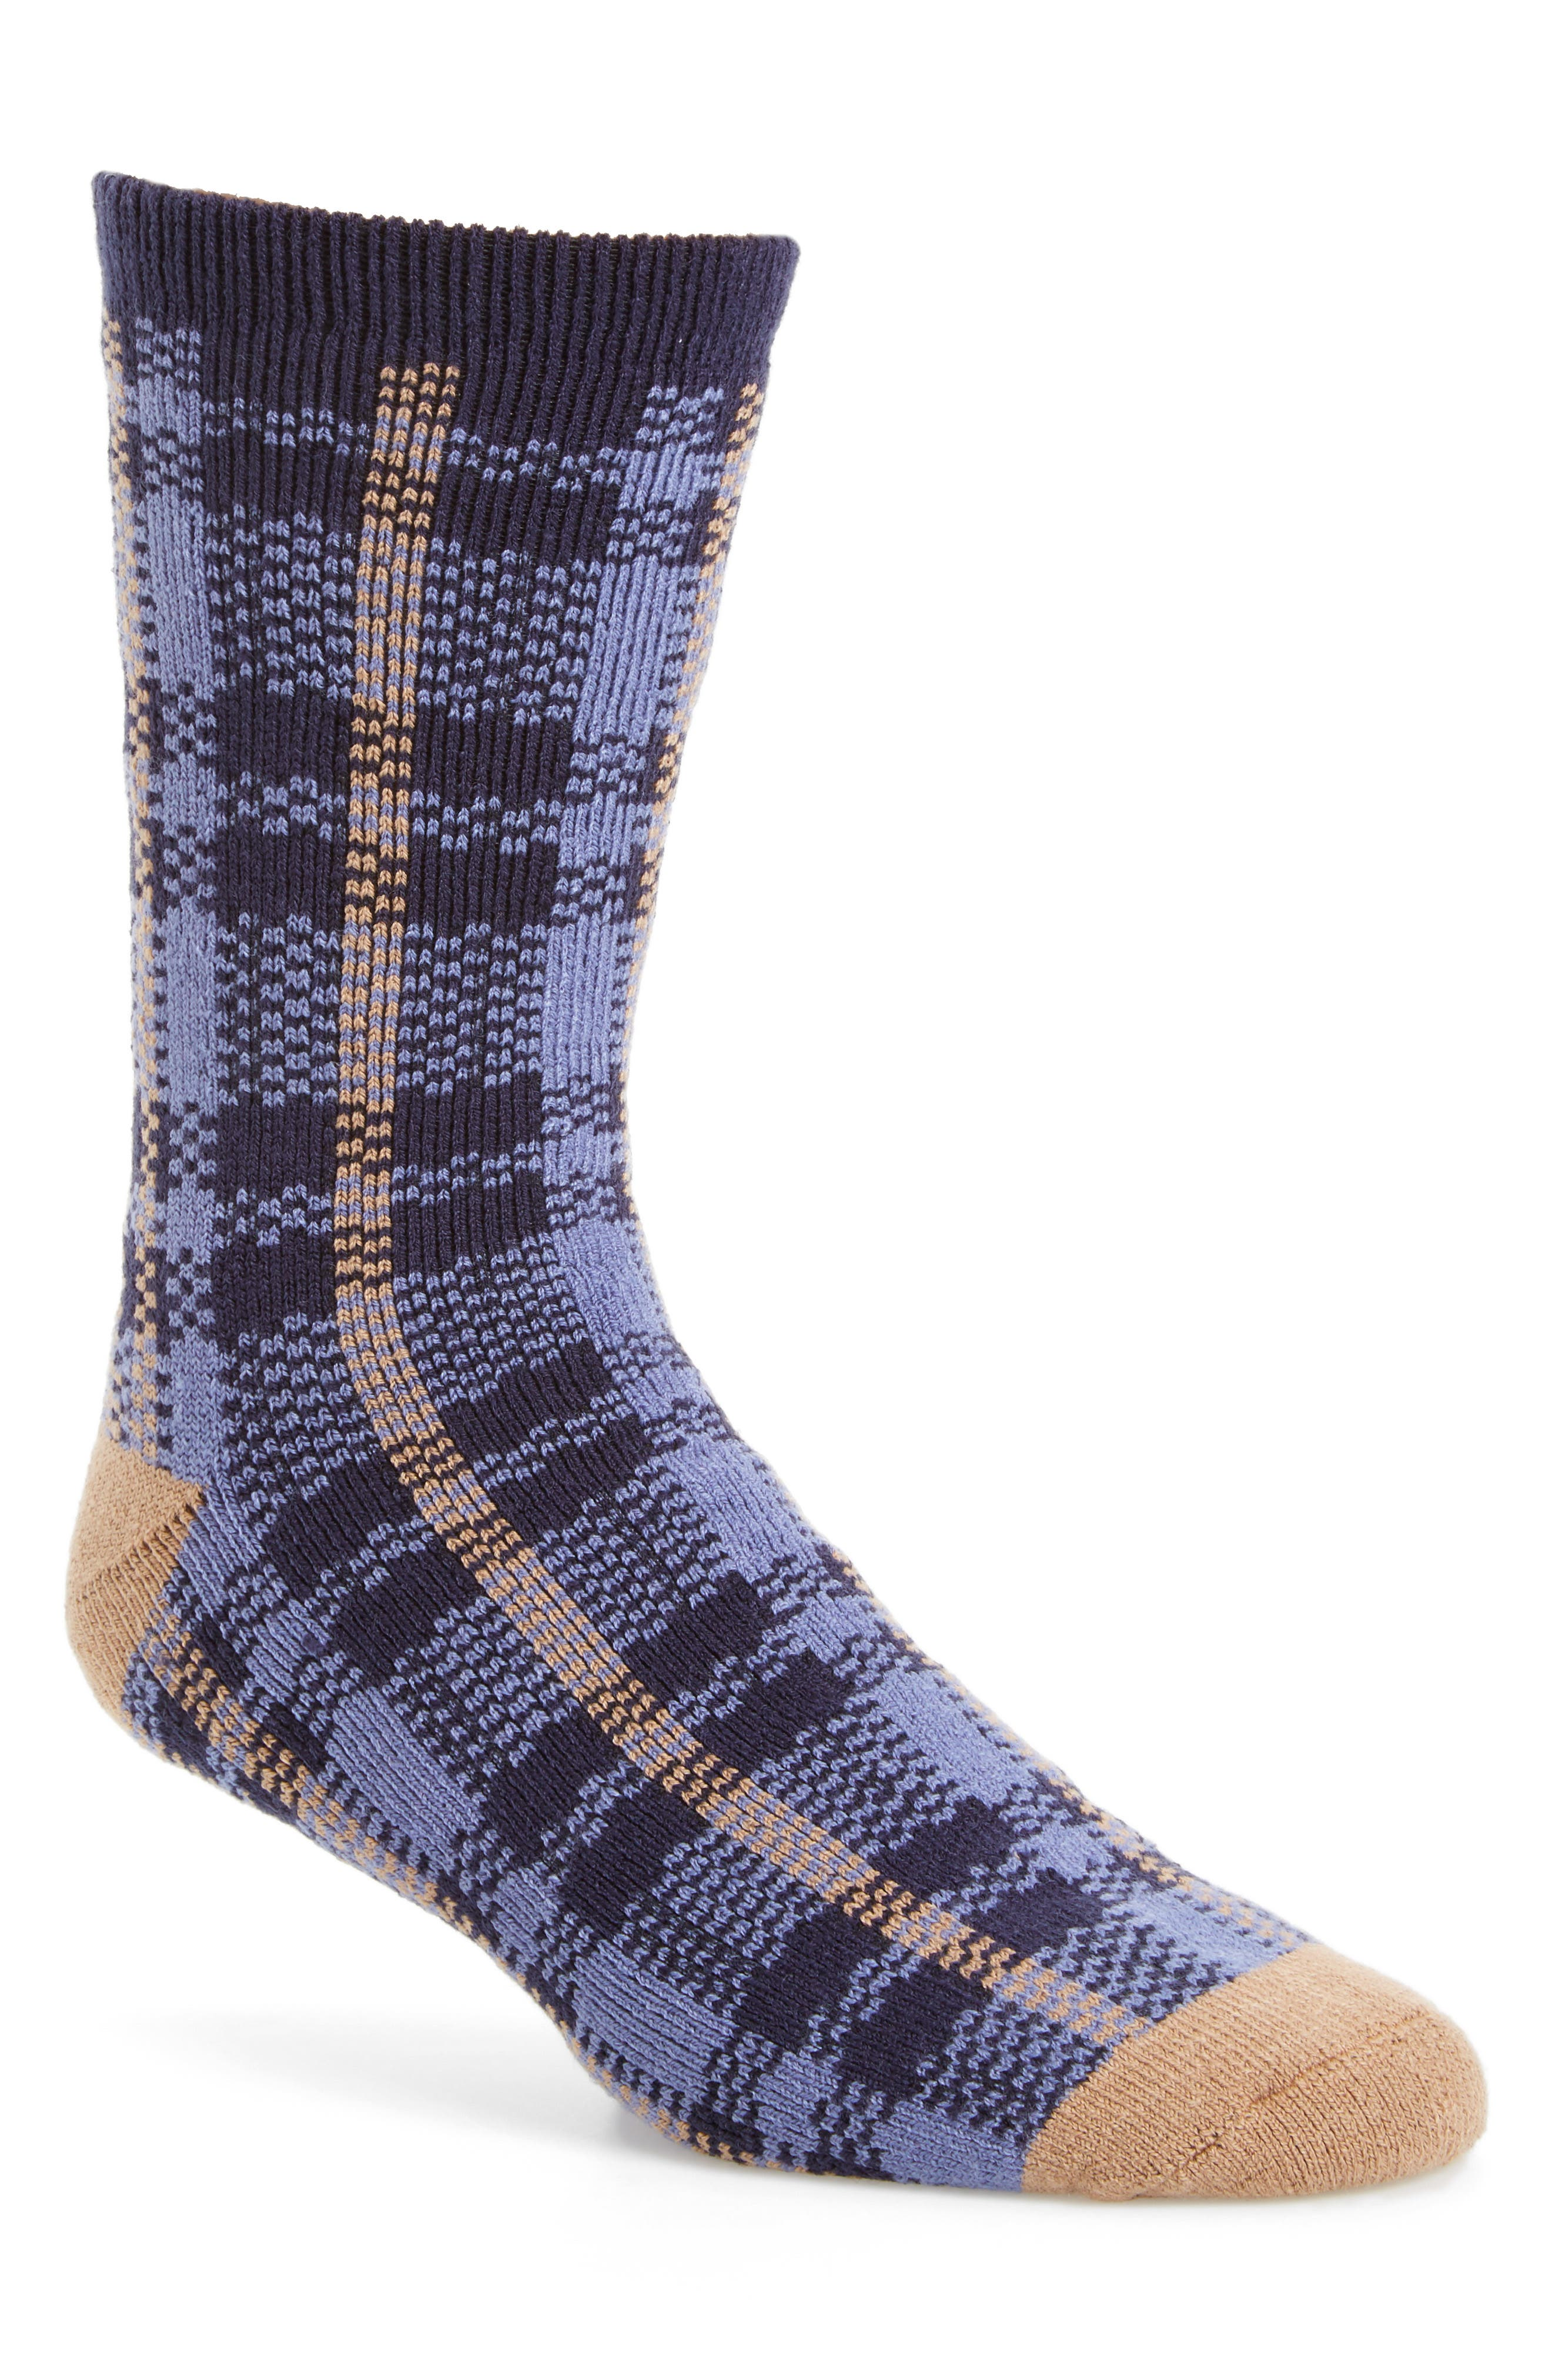 Plaid Socks,                             Main thumbnail 3, color,